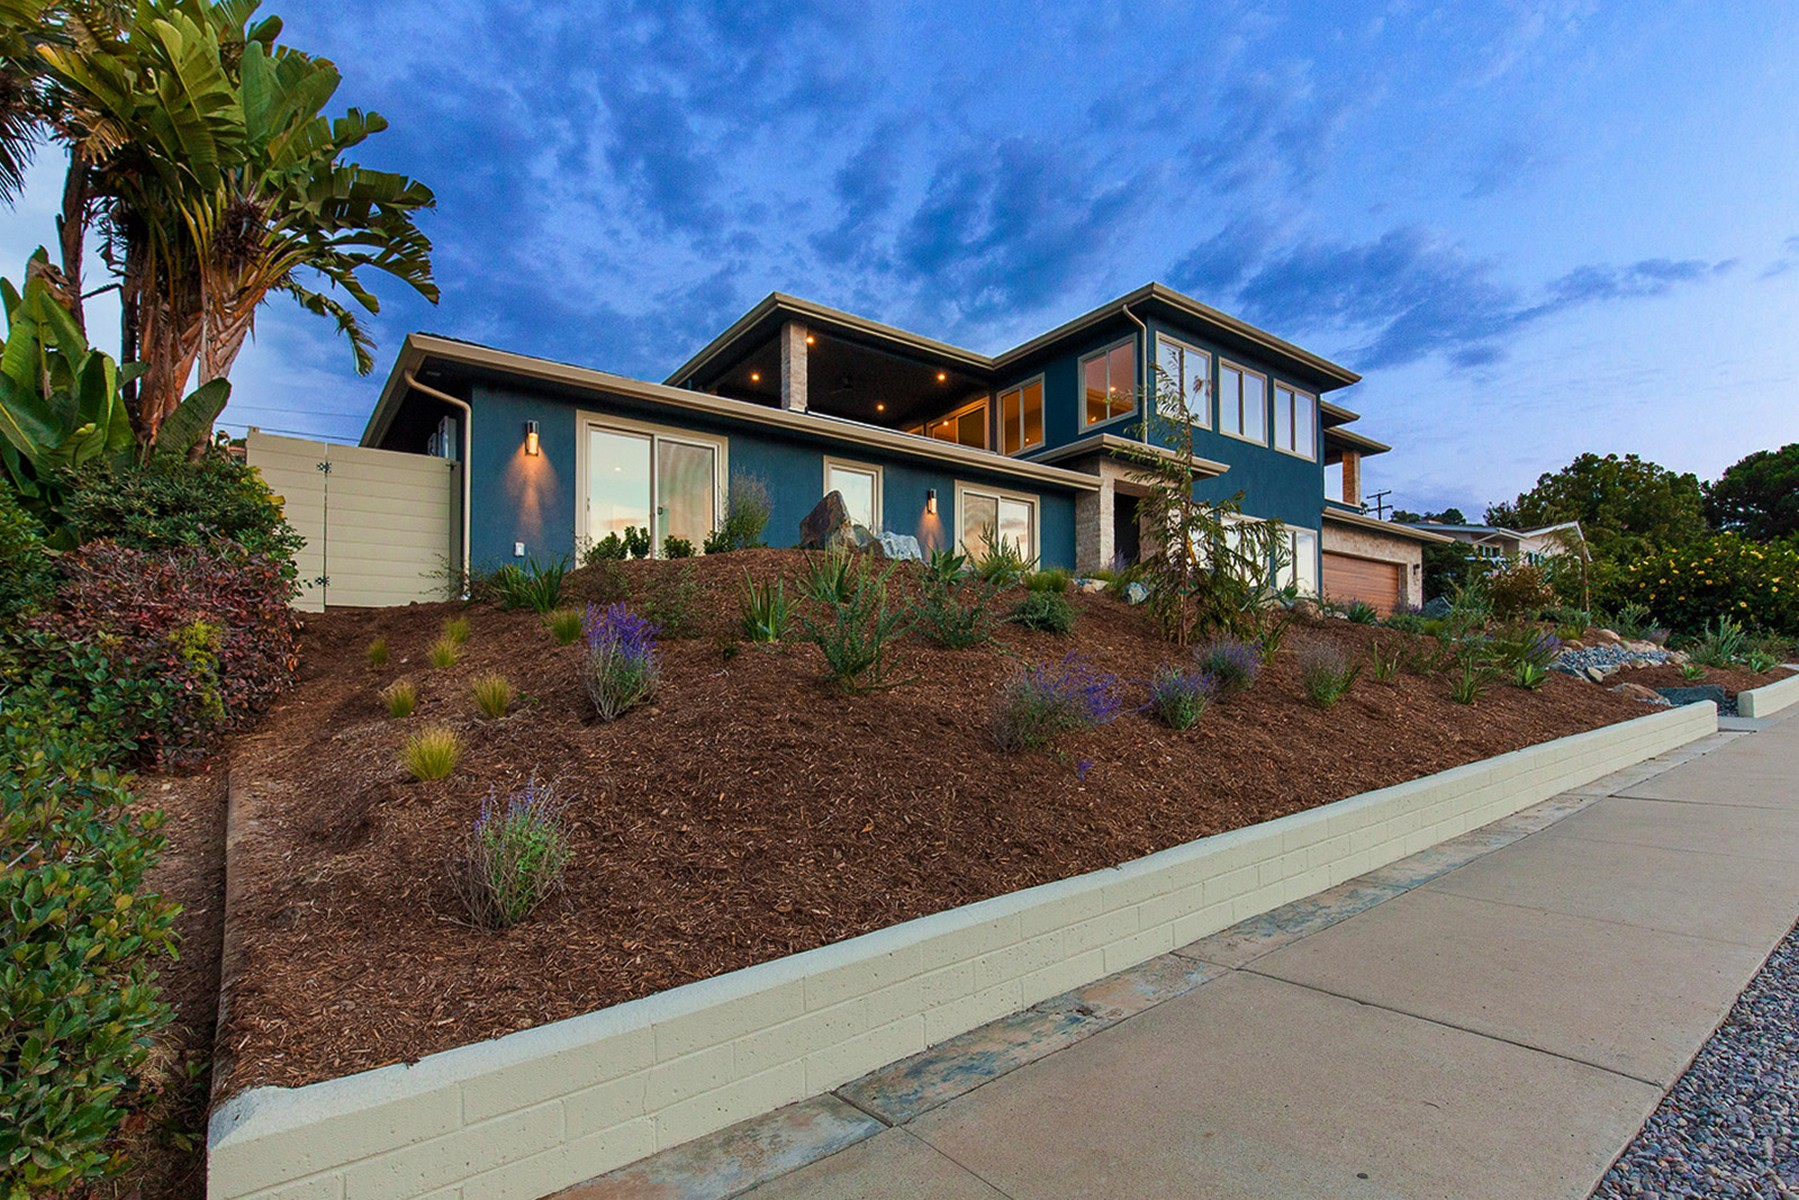 Additional photo for property listing at 6645 Avenida De Las Pescas  La Jolla, California 92037 United States